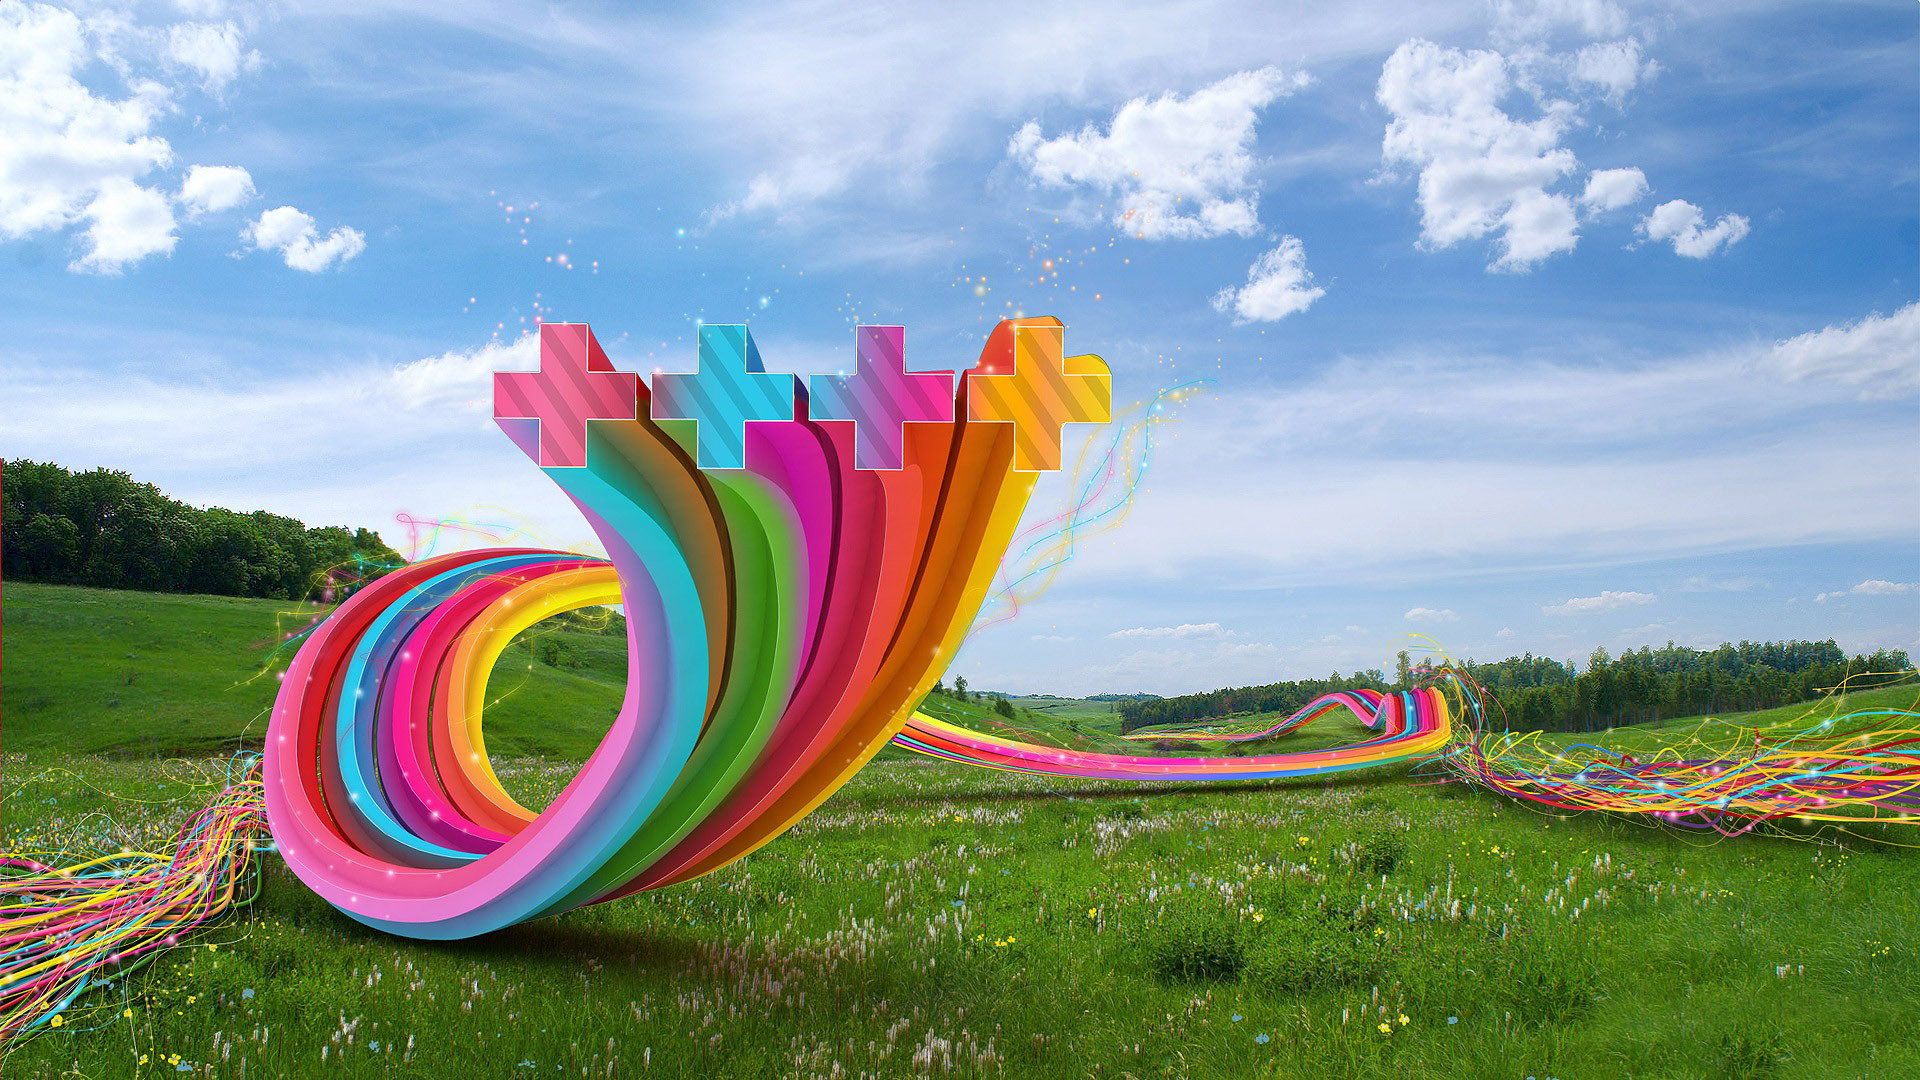 Swirling ribbons in the meadow